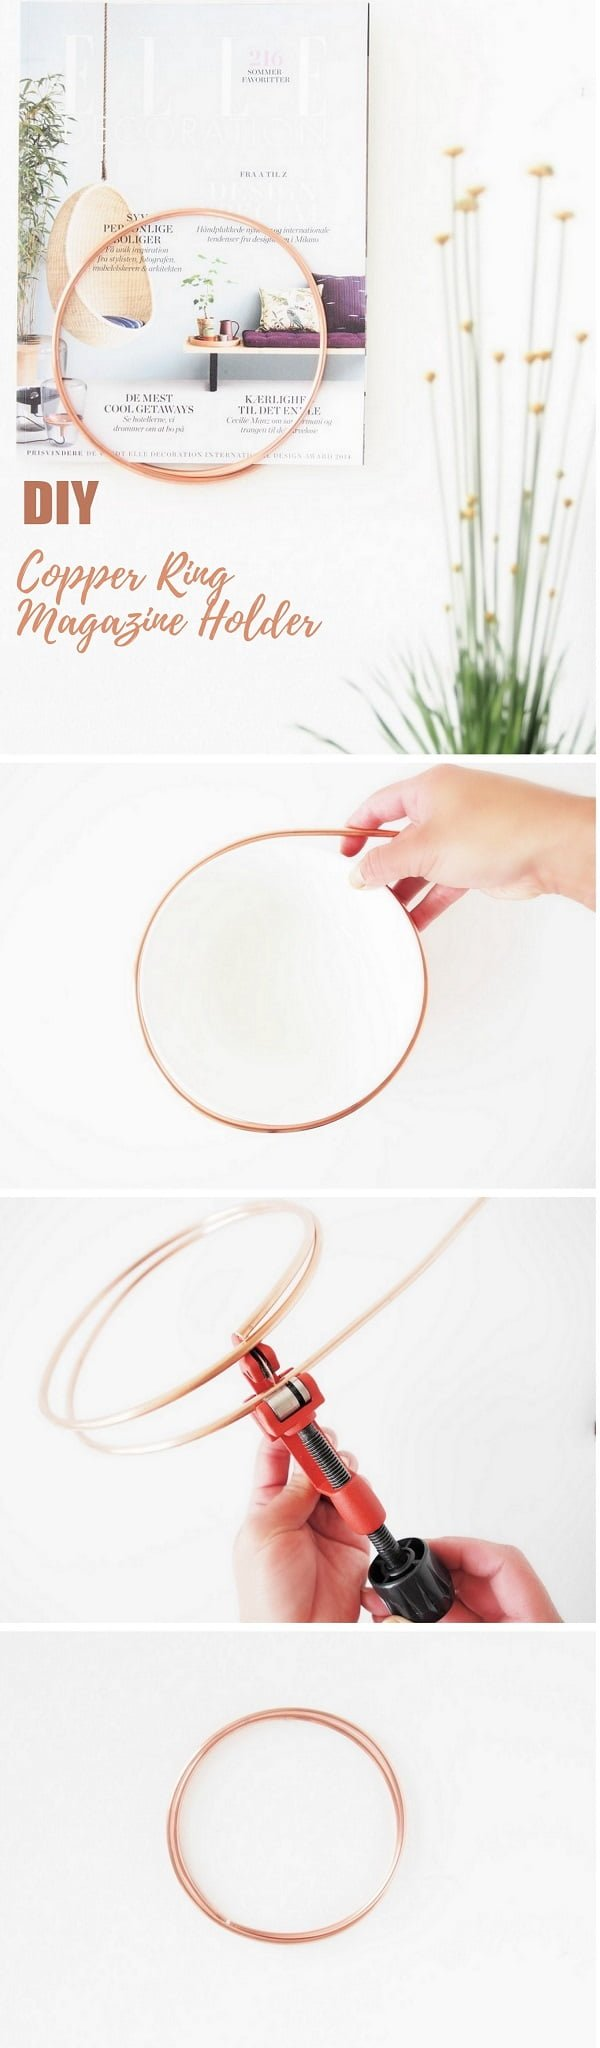 Check out this easy idea on how to make a #DIY copper ring magazine holder for #apartments #homedecor on a #budget #crafts